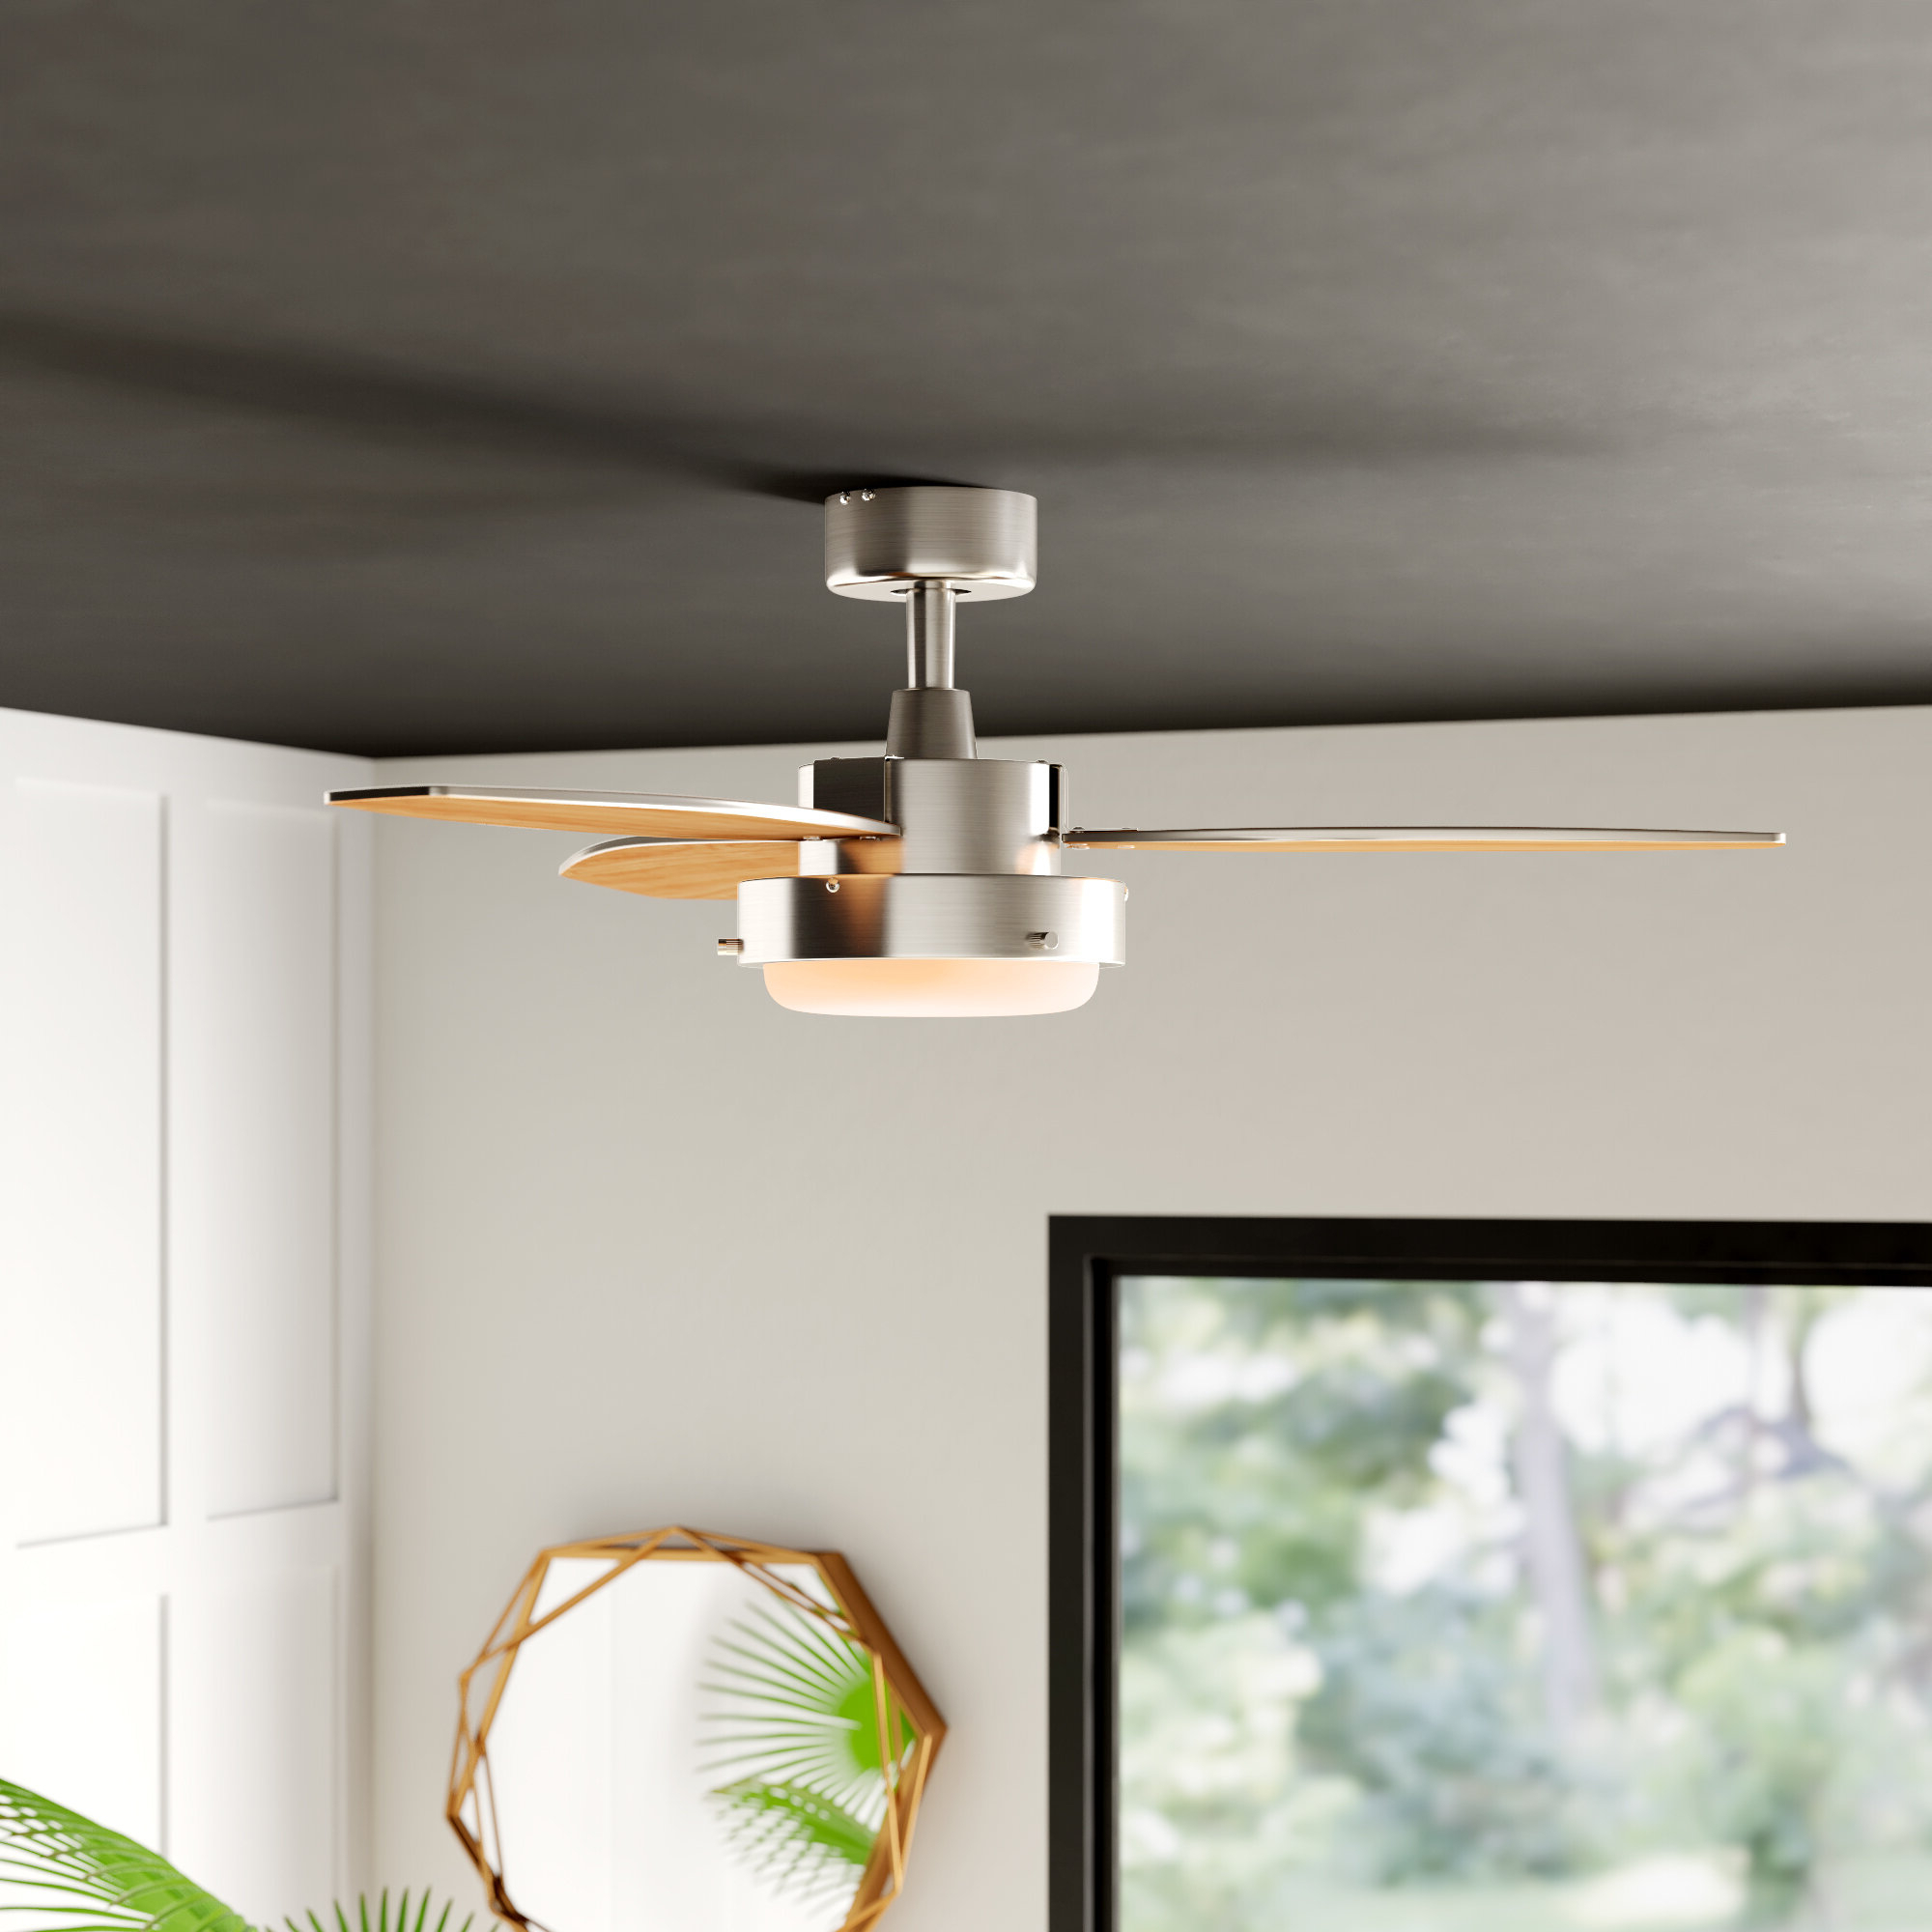 "2020 42"" Corsa 3 Blade Ceiling Fan Light Kit Included Throughout Aker 3 Blade Led Ceiling Fans (View 1 of 20)"